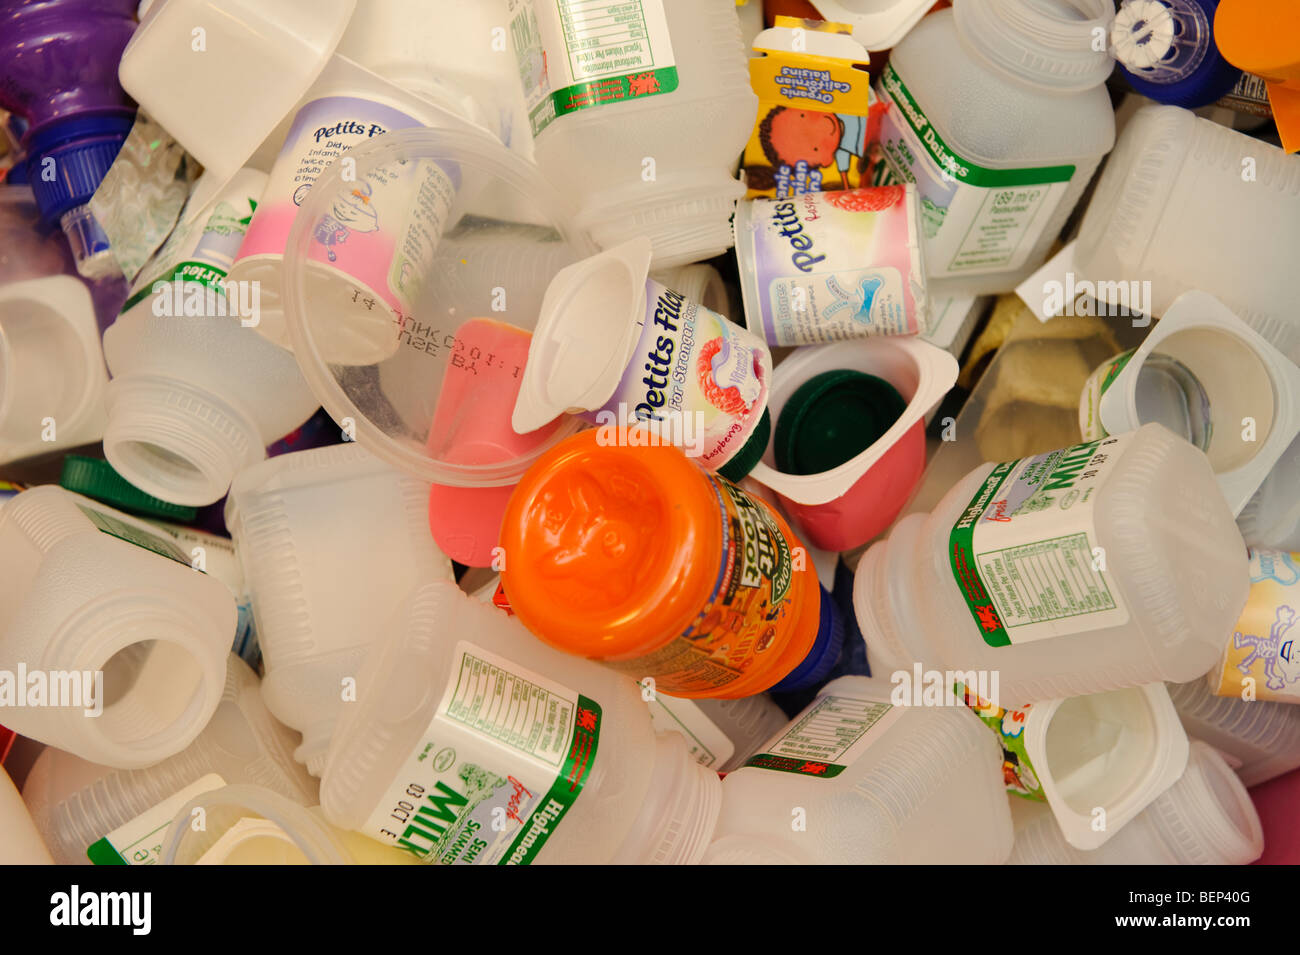 pile of waste plastic bottles and yogurt pots food packaging awaiting stock photo royalty free. Black Bedroom Furniture Sets. Home Design Ideas